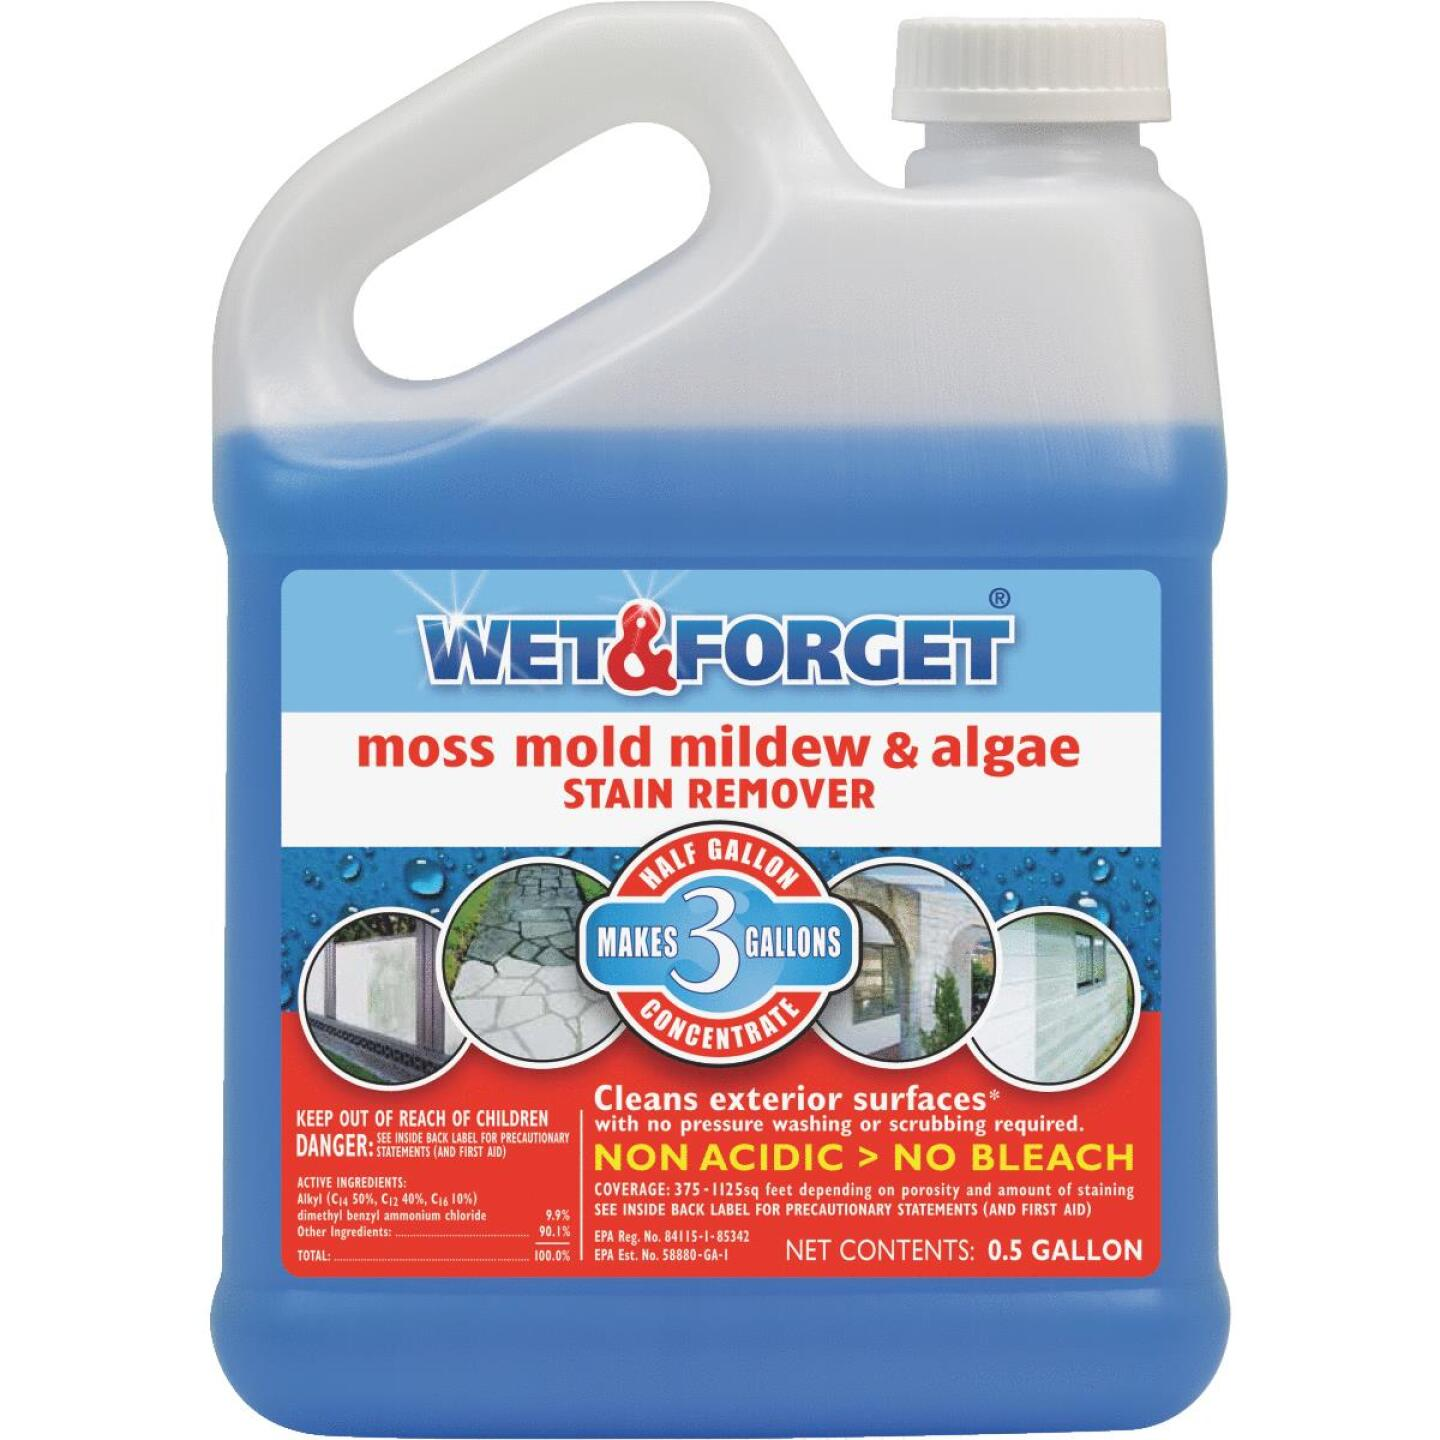 Wet & Forget 1/2 Gal. Liquid Concentrate Moss, Mildew, Algae, & Mold Stain Remover Image 1